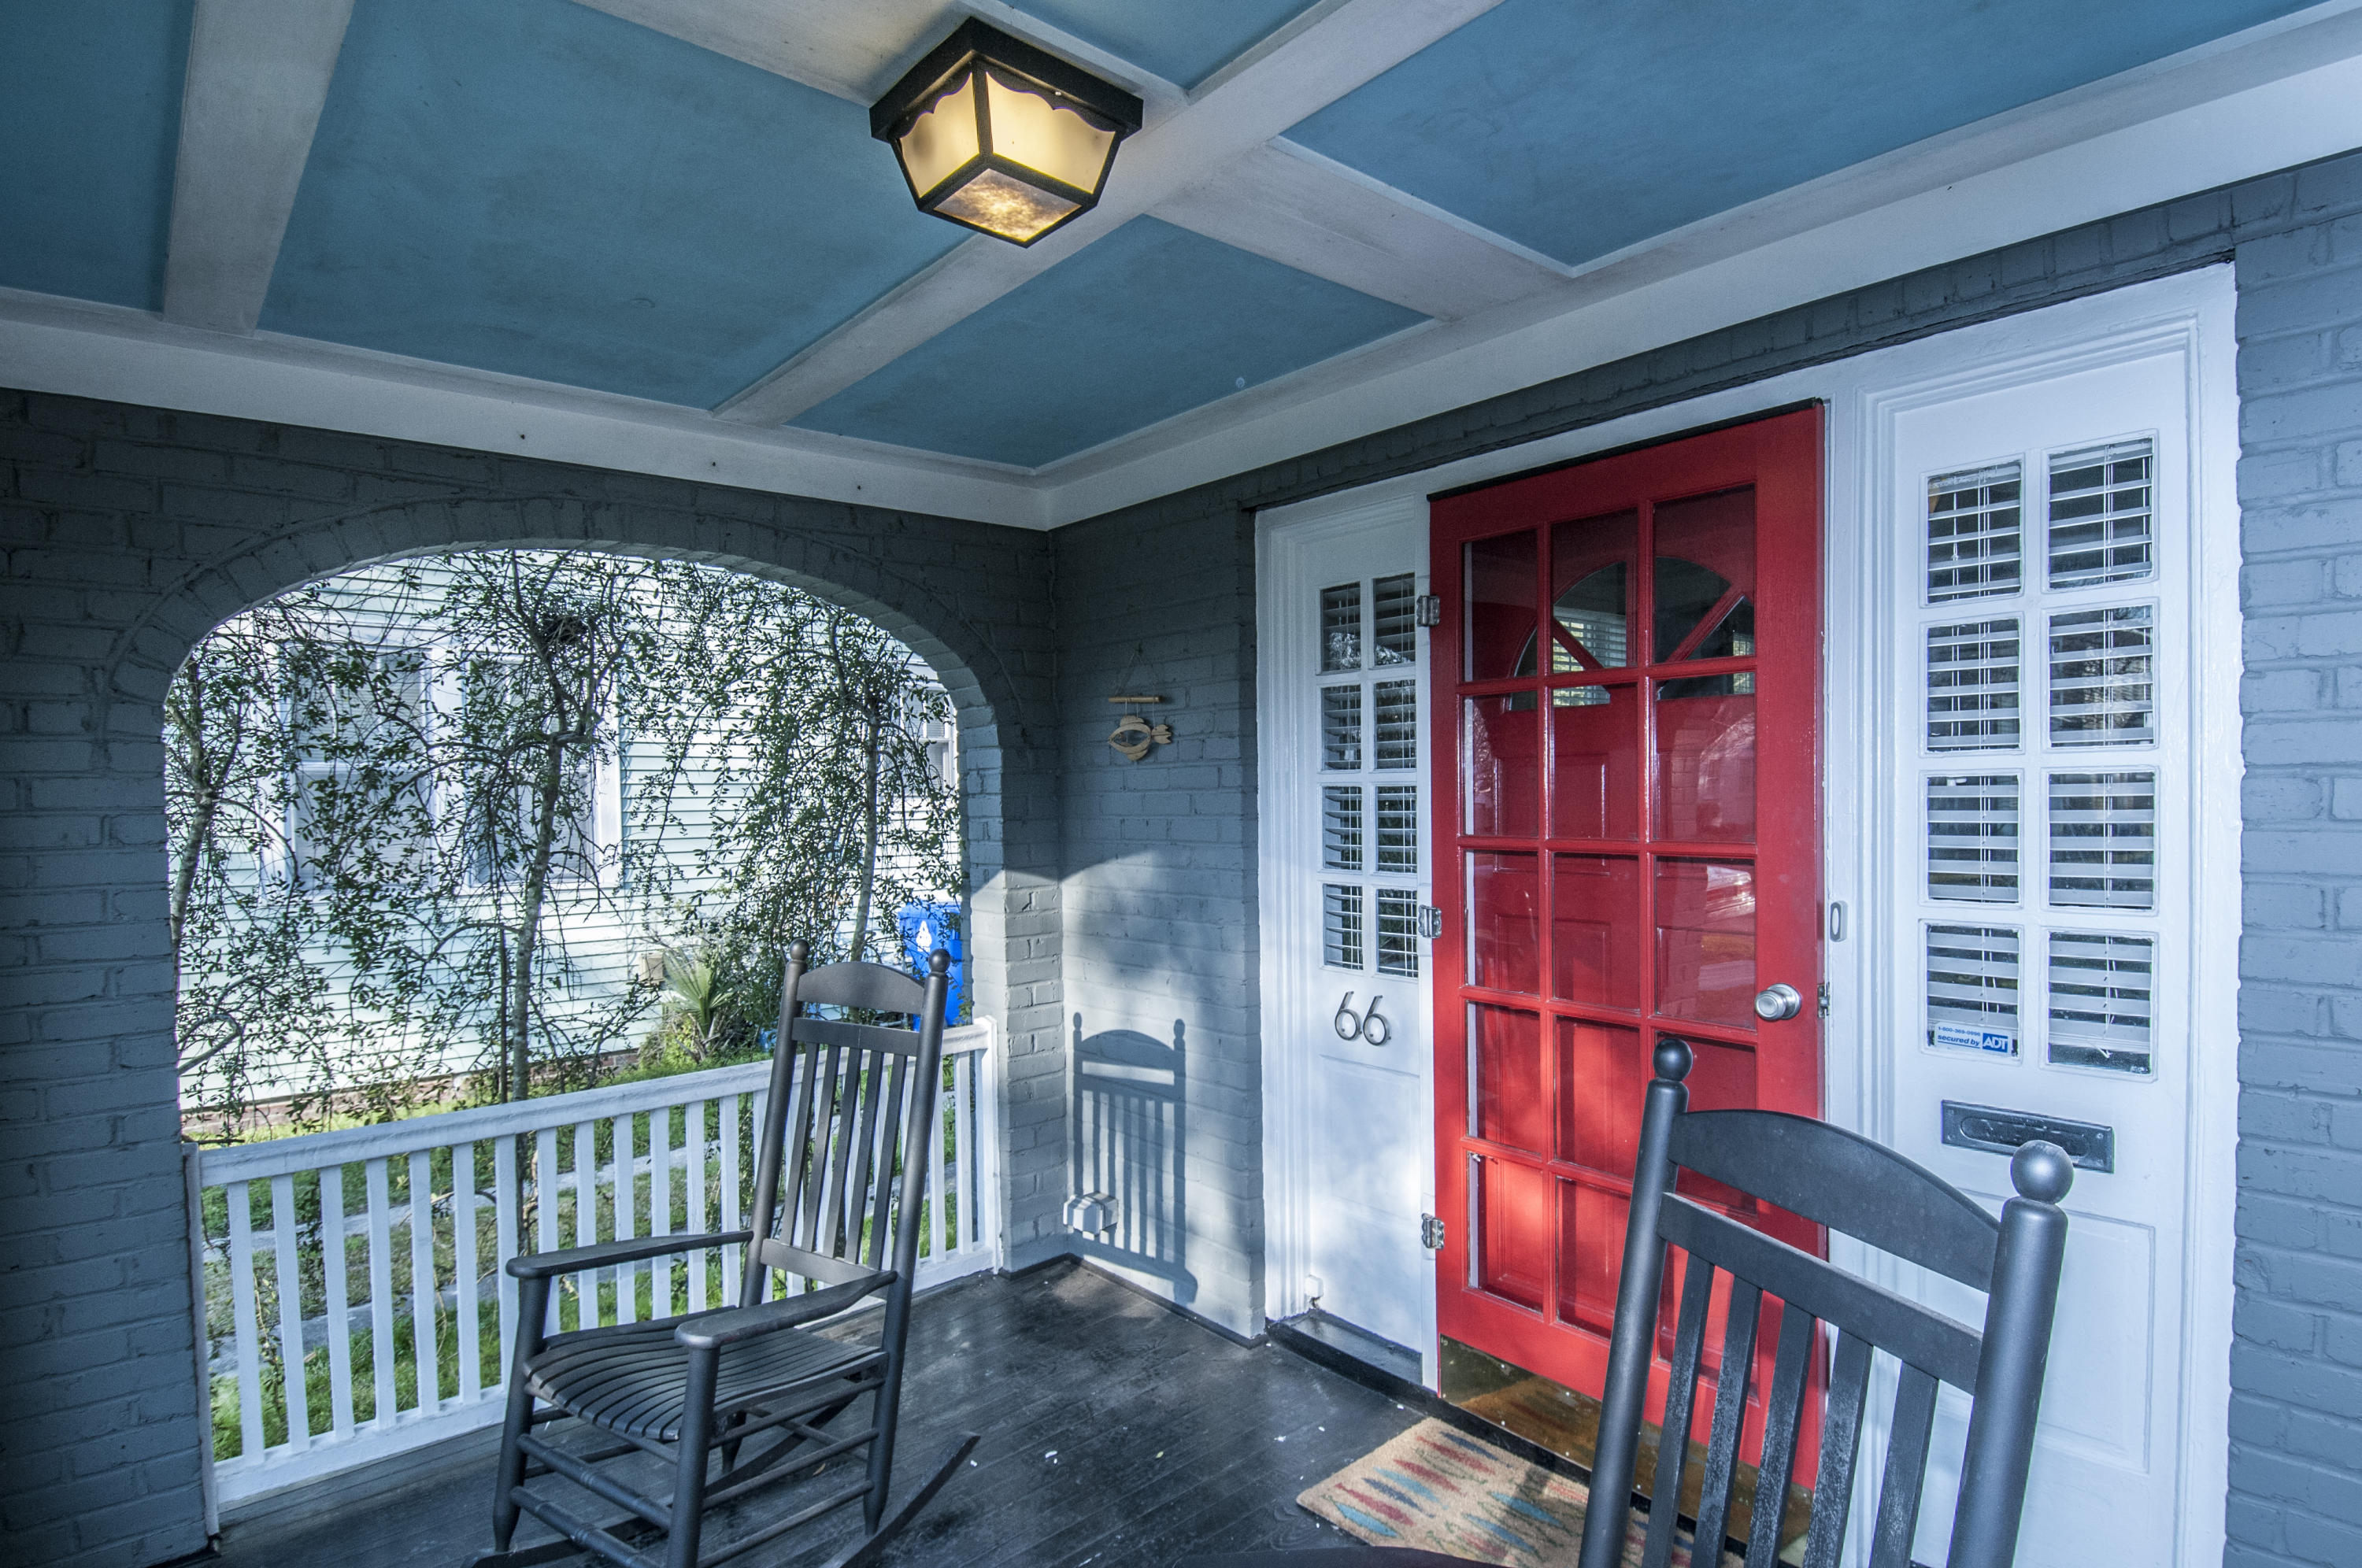 Photo of 66 Darlington Ave, Charleston, SC 29403